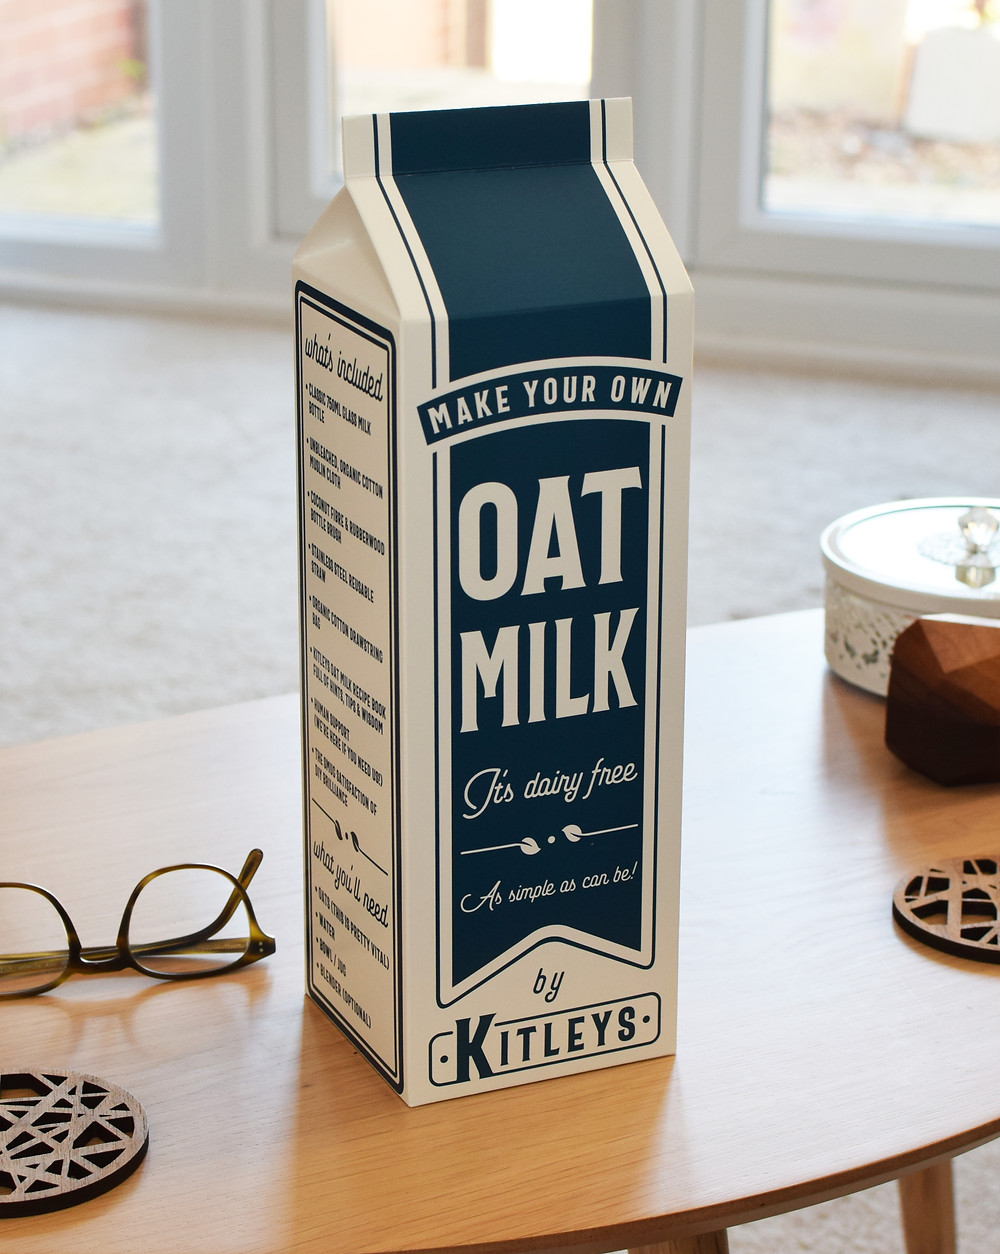 The kitleys oat milk kit, which is plastic free